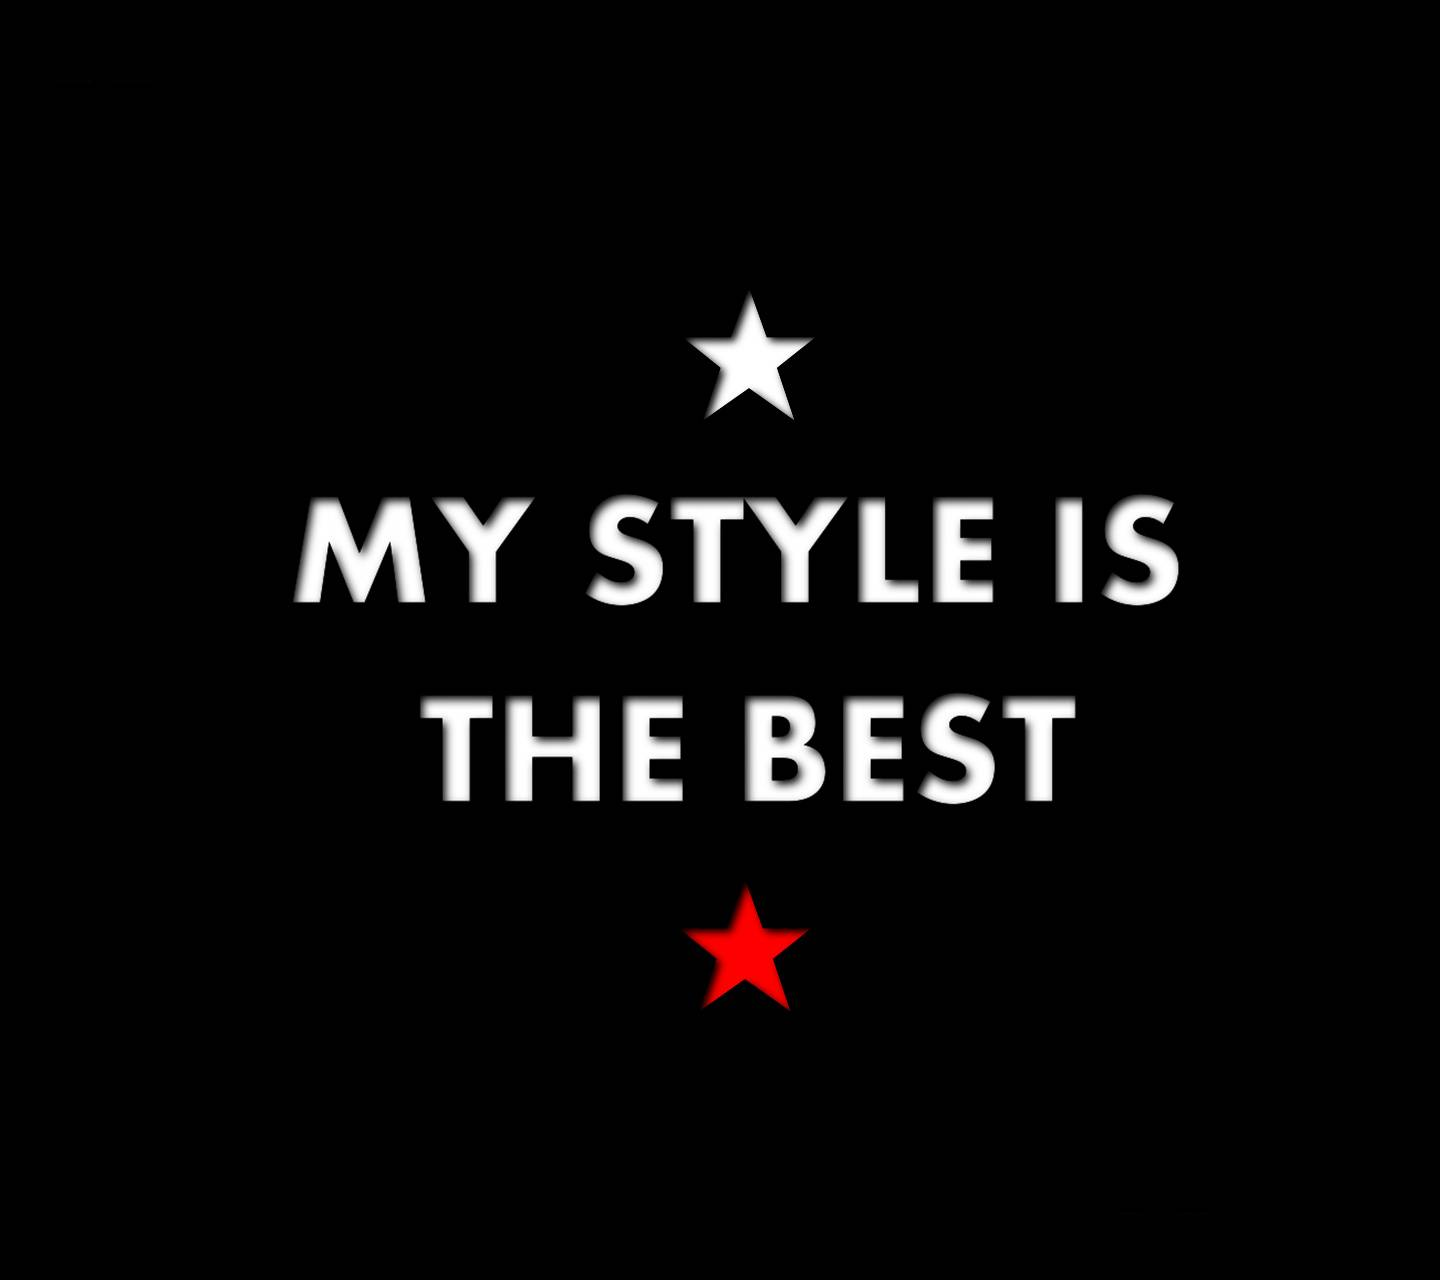 My Style is The Best